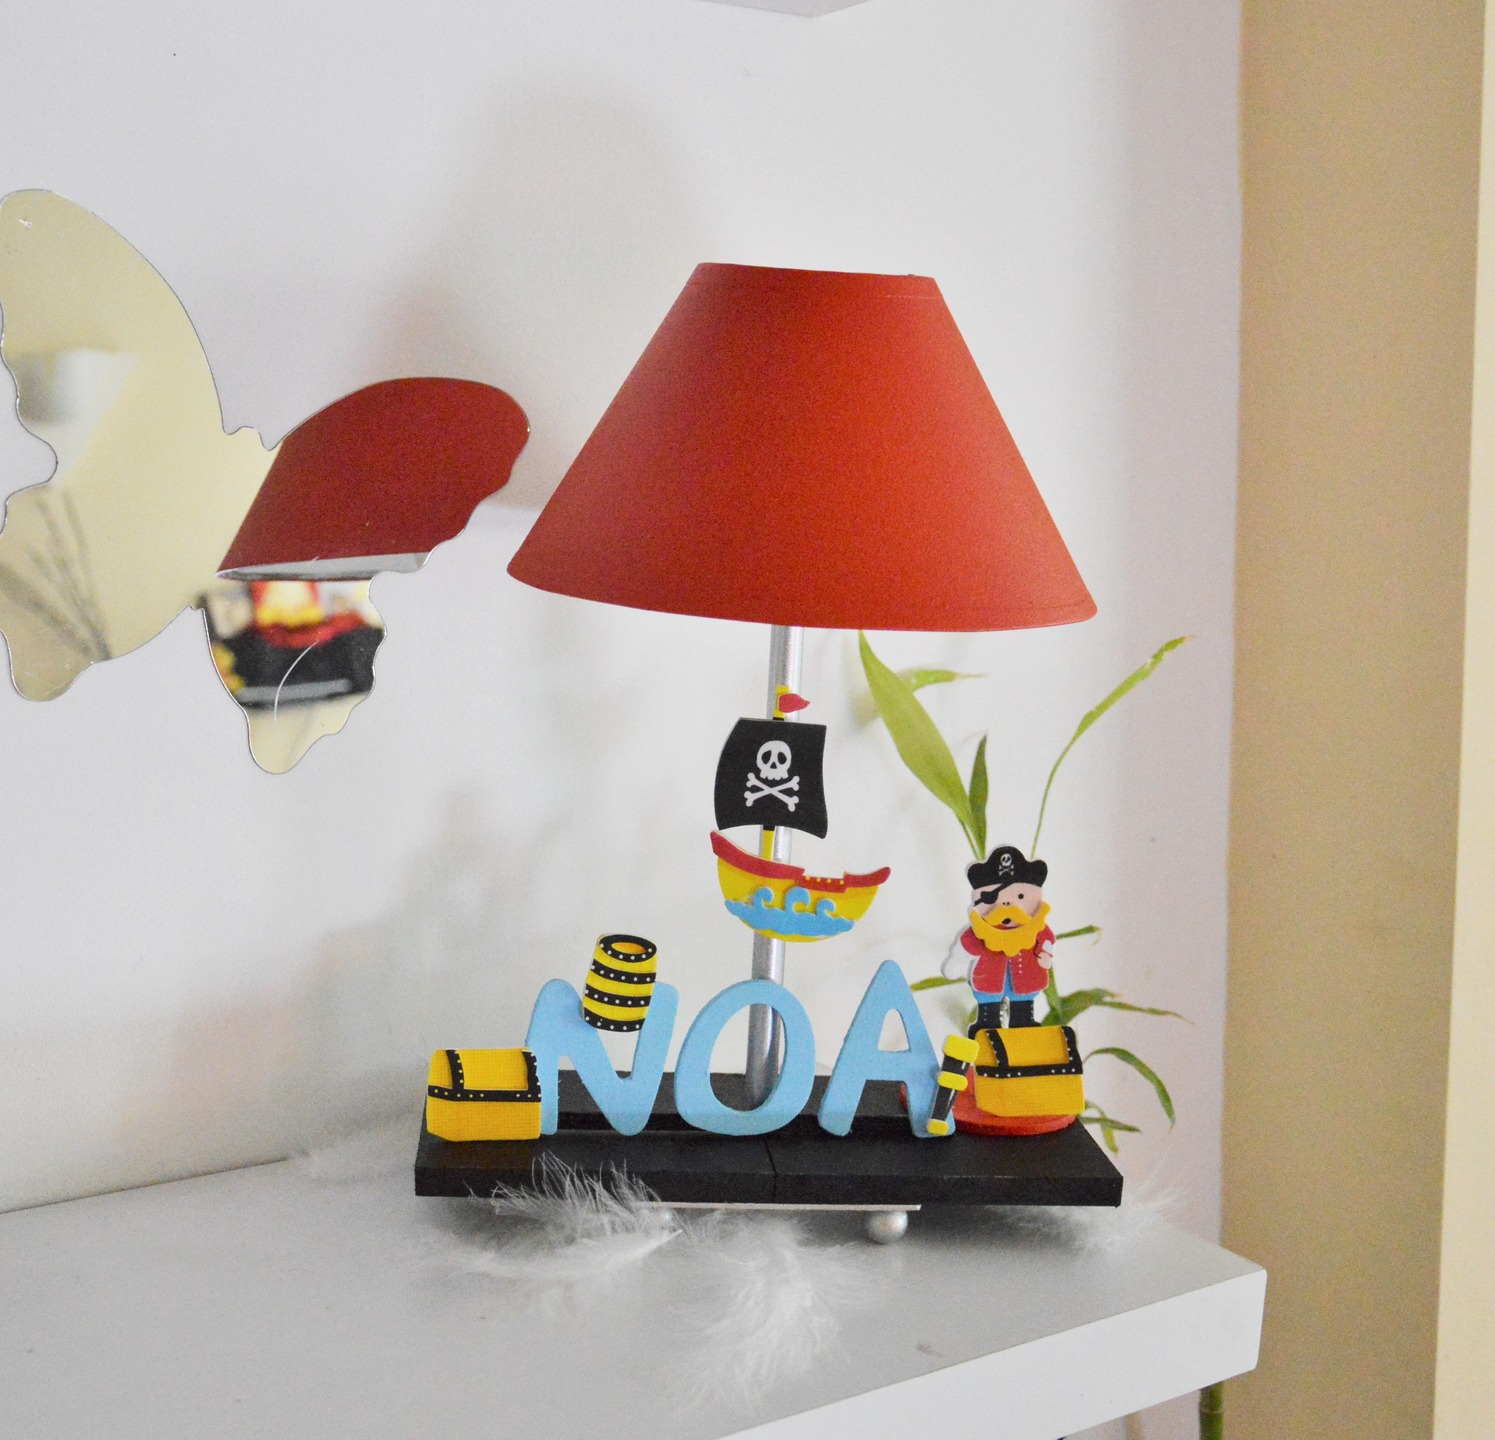 lampe de chevet enfant bois ouistitipop. Black Bedroom Furniture Sets. Home Design Ideas